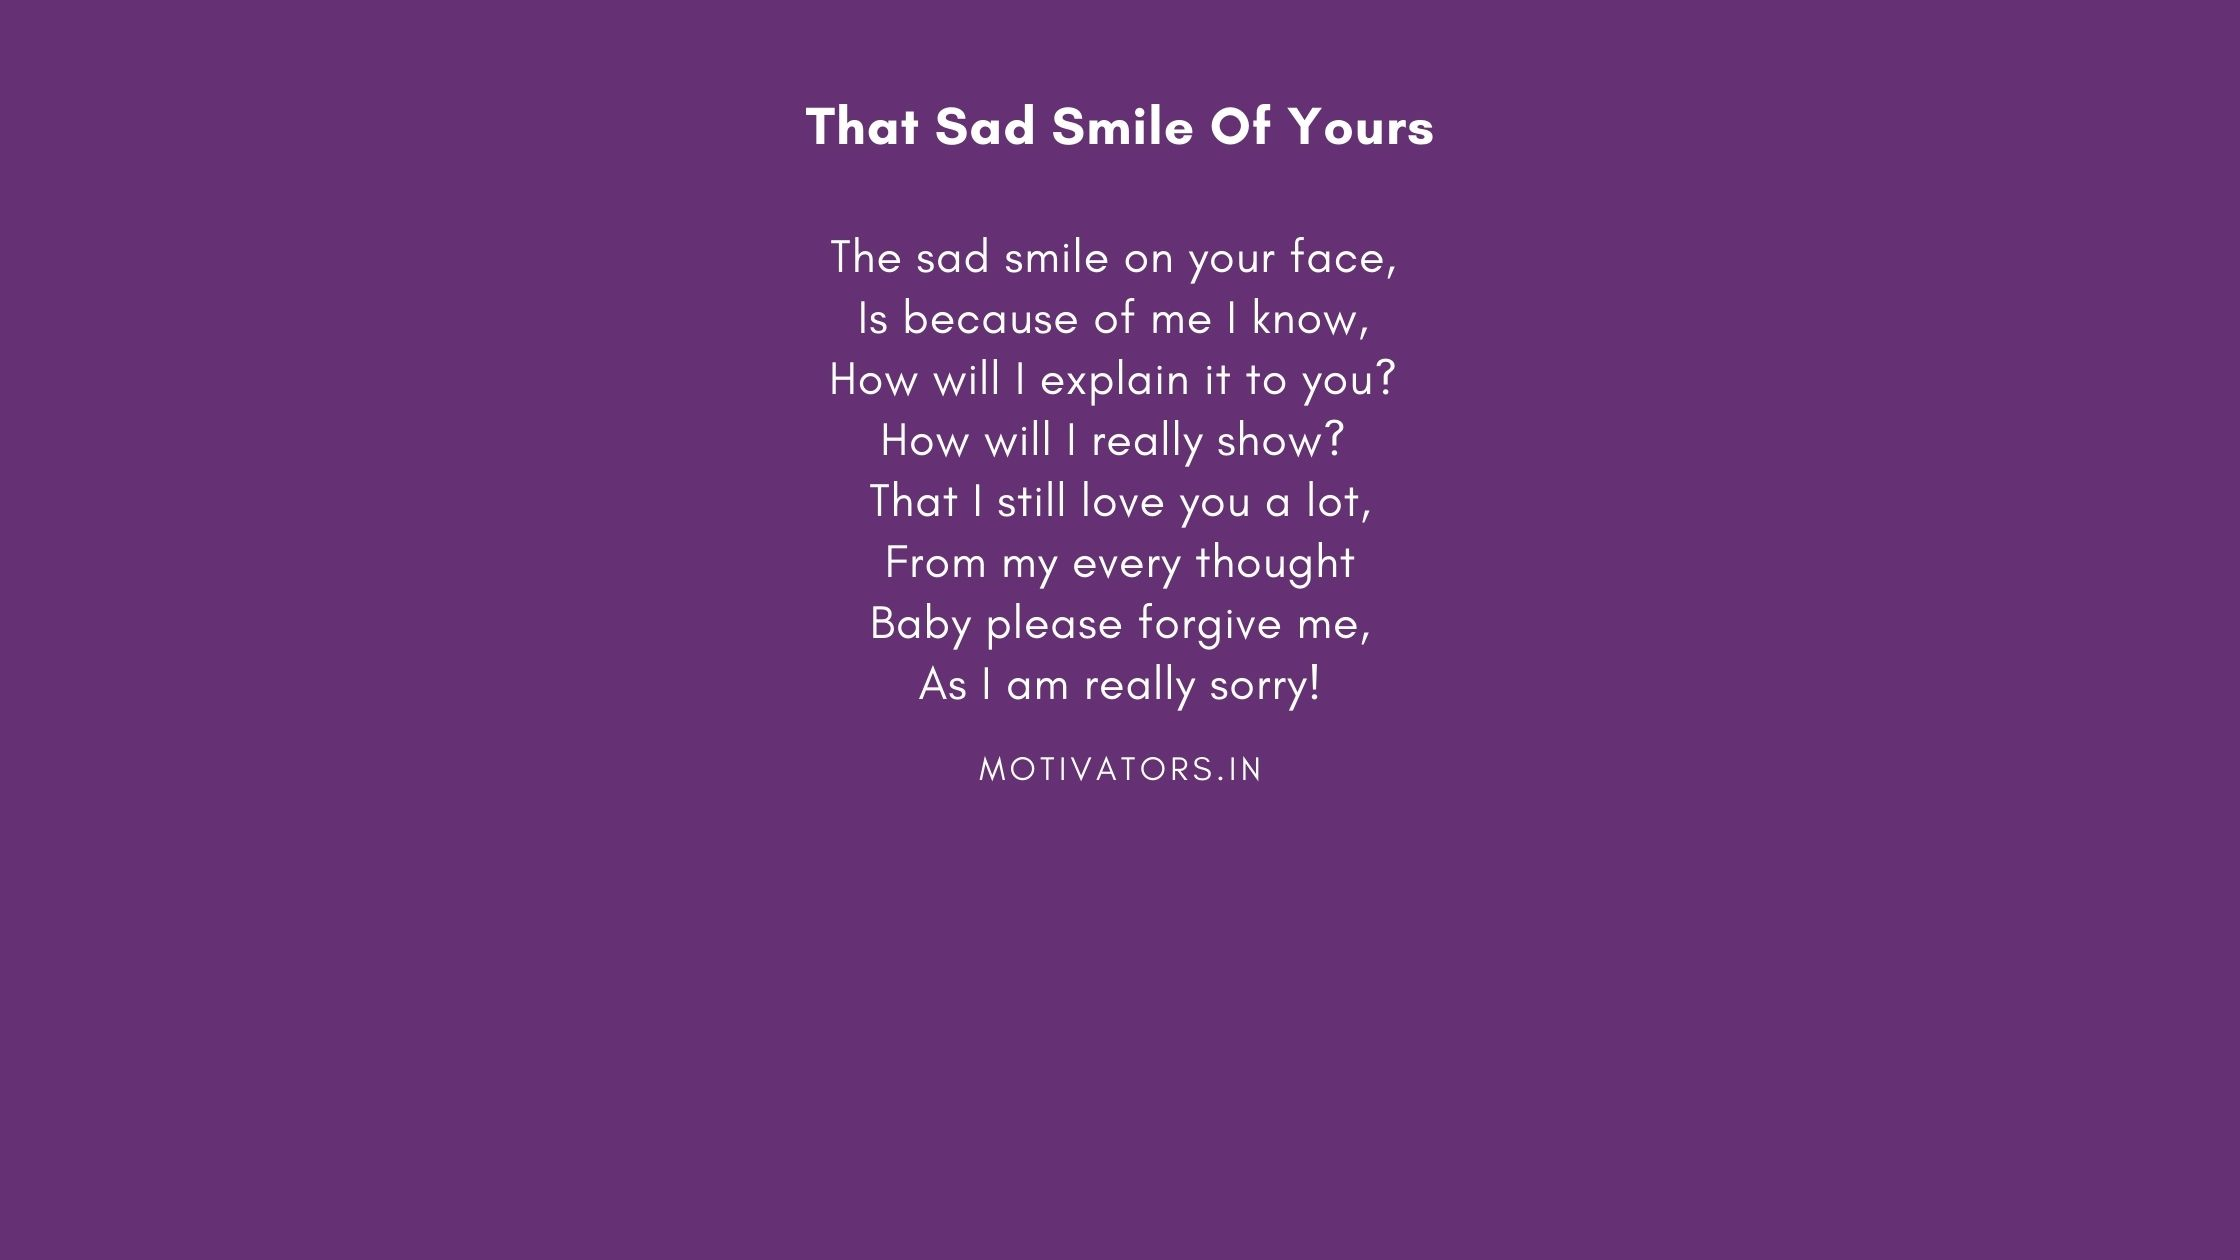 That Sad Smile Of Yours